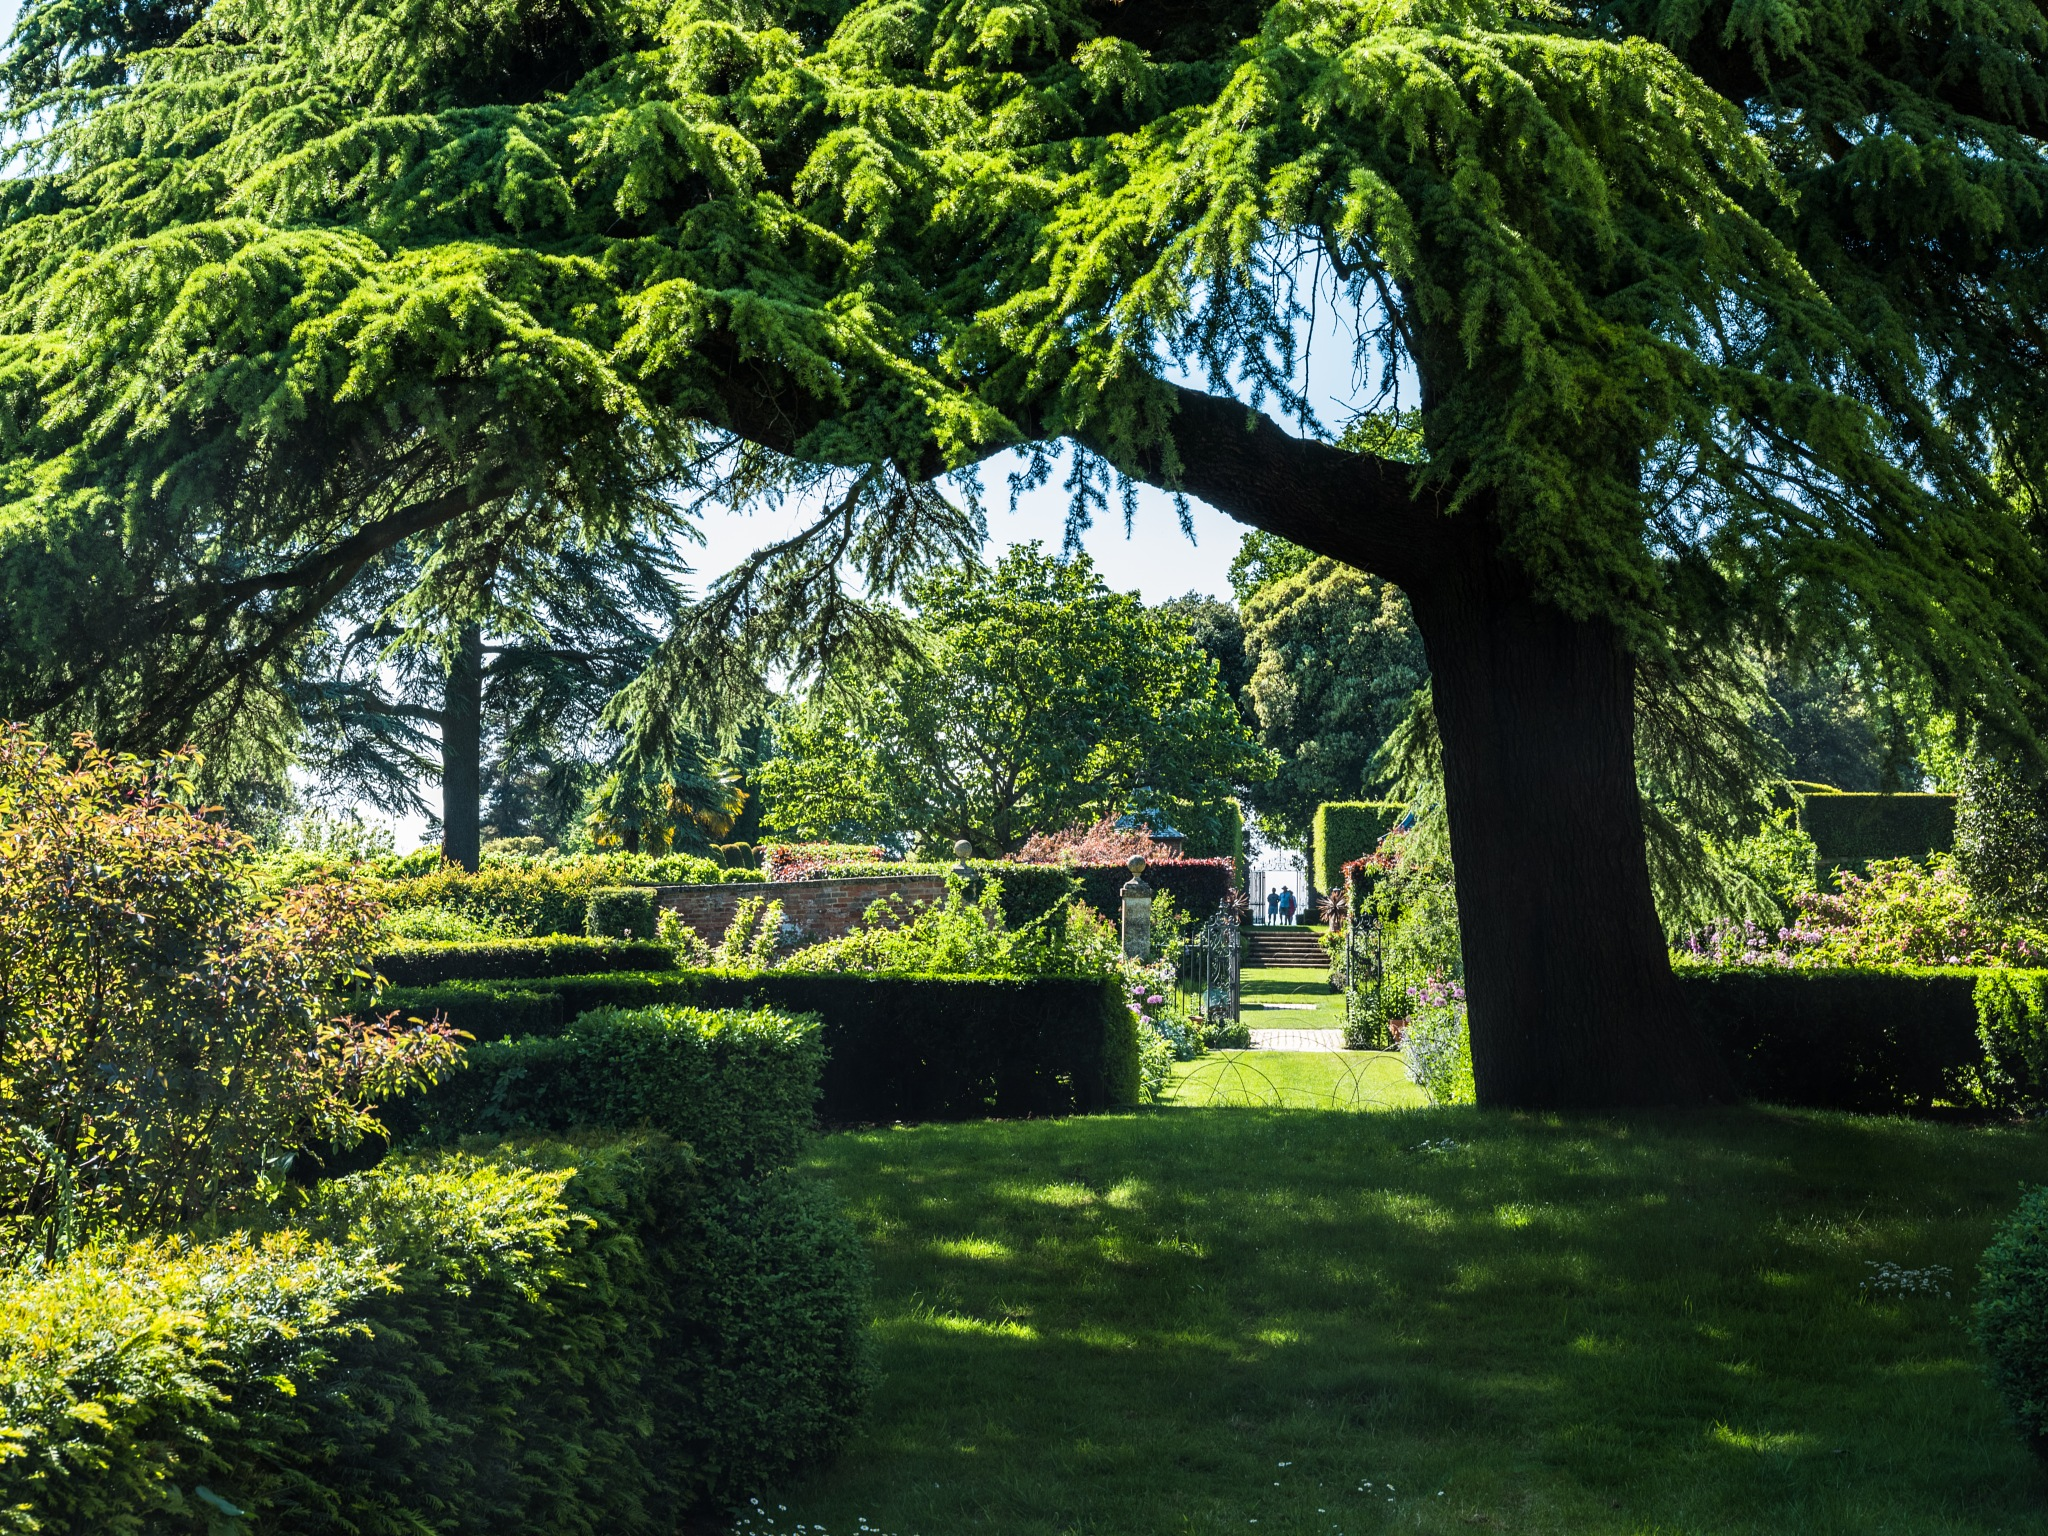 Cotswold garden by hutchst